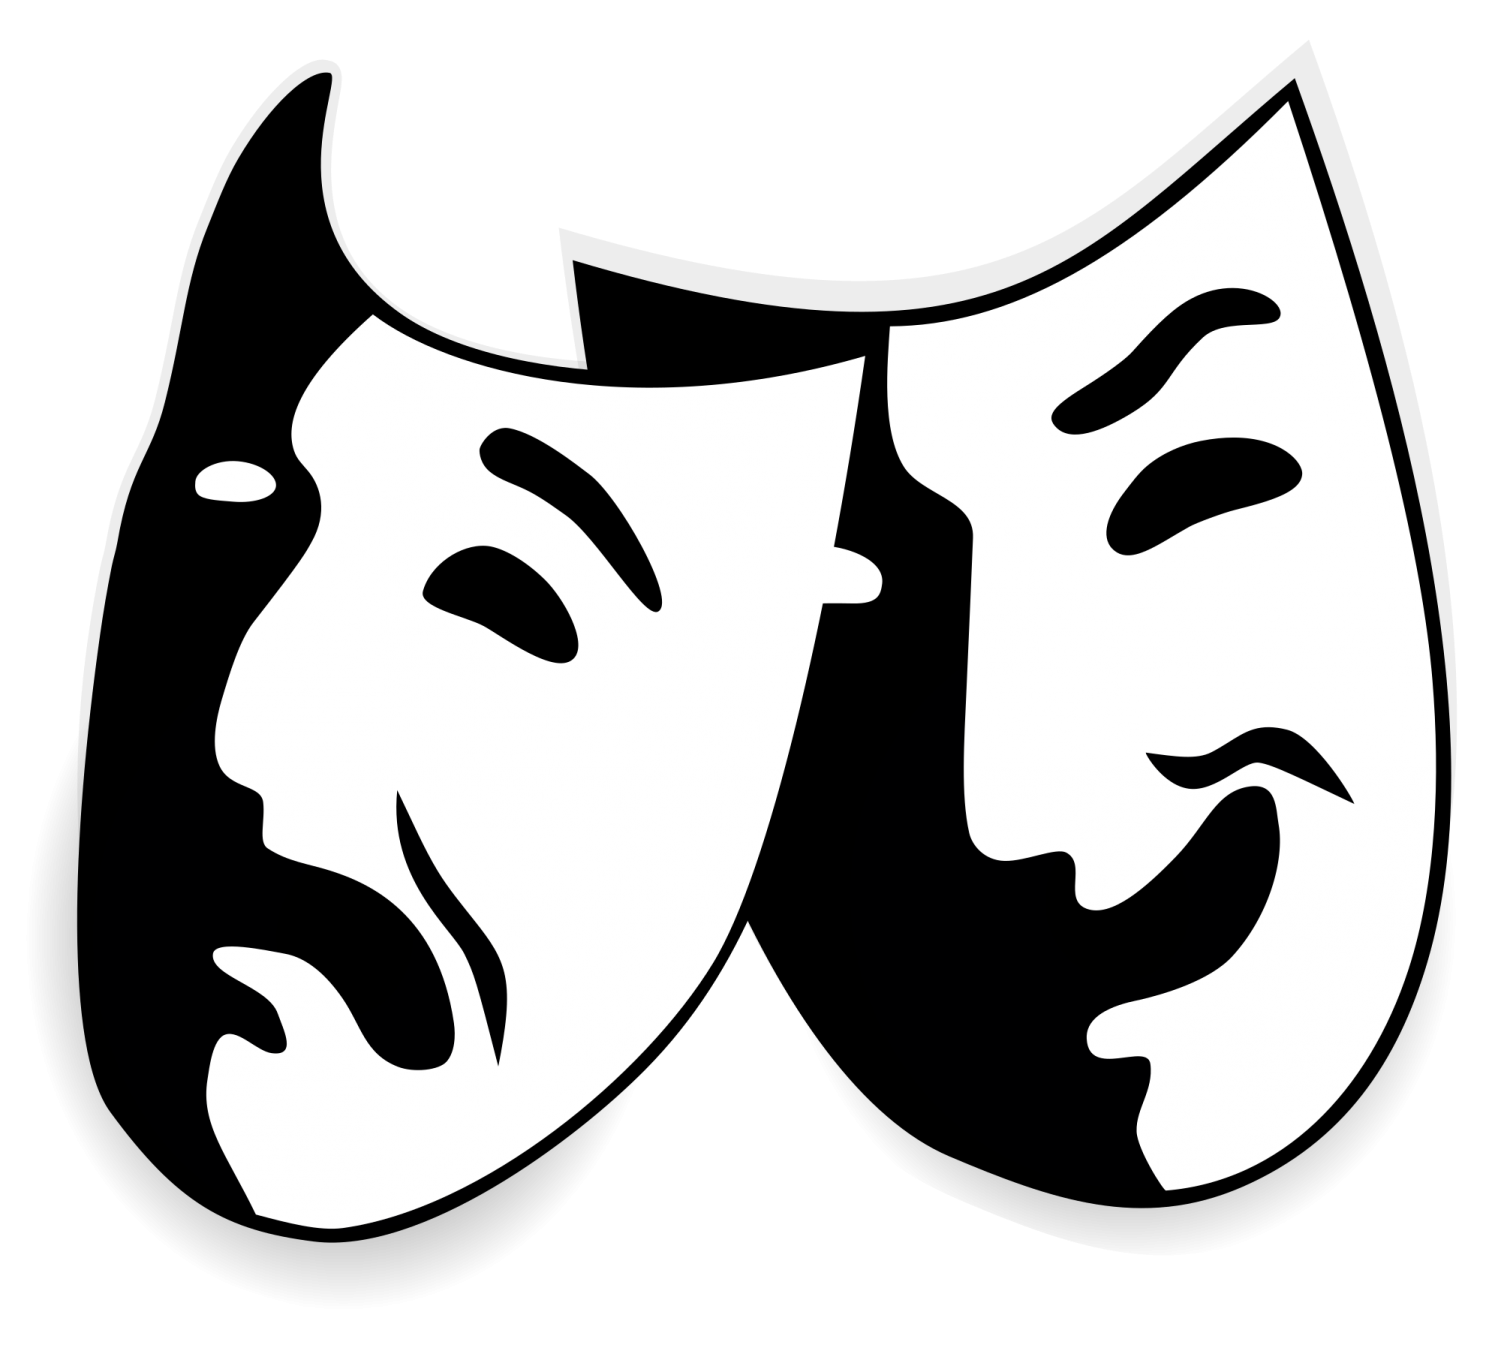 Thespian clipart